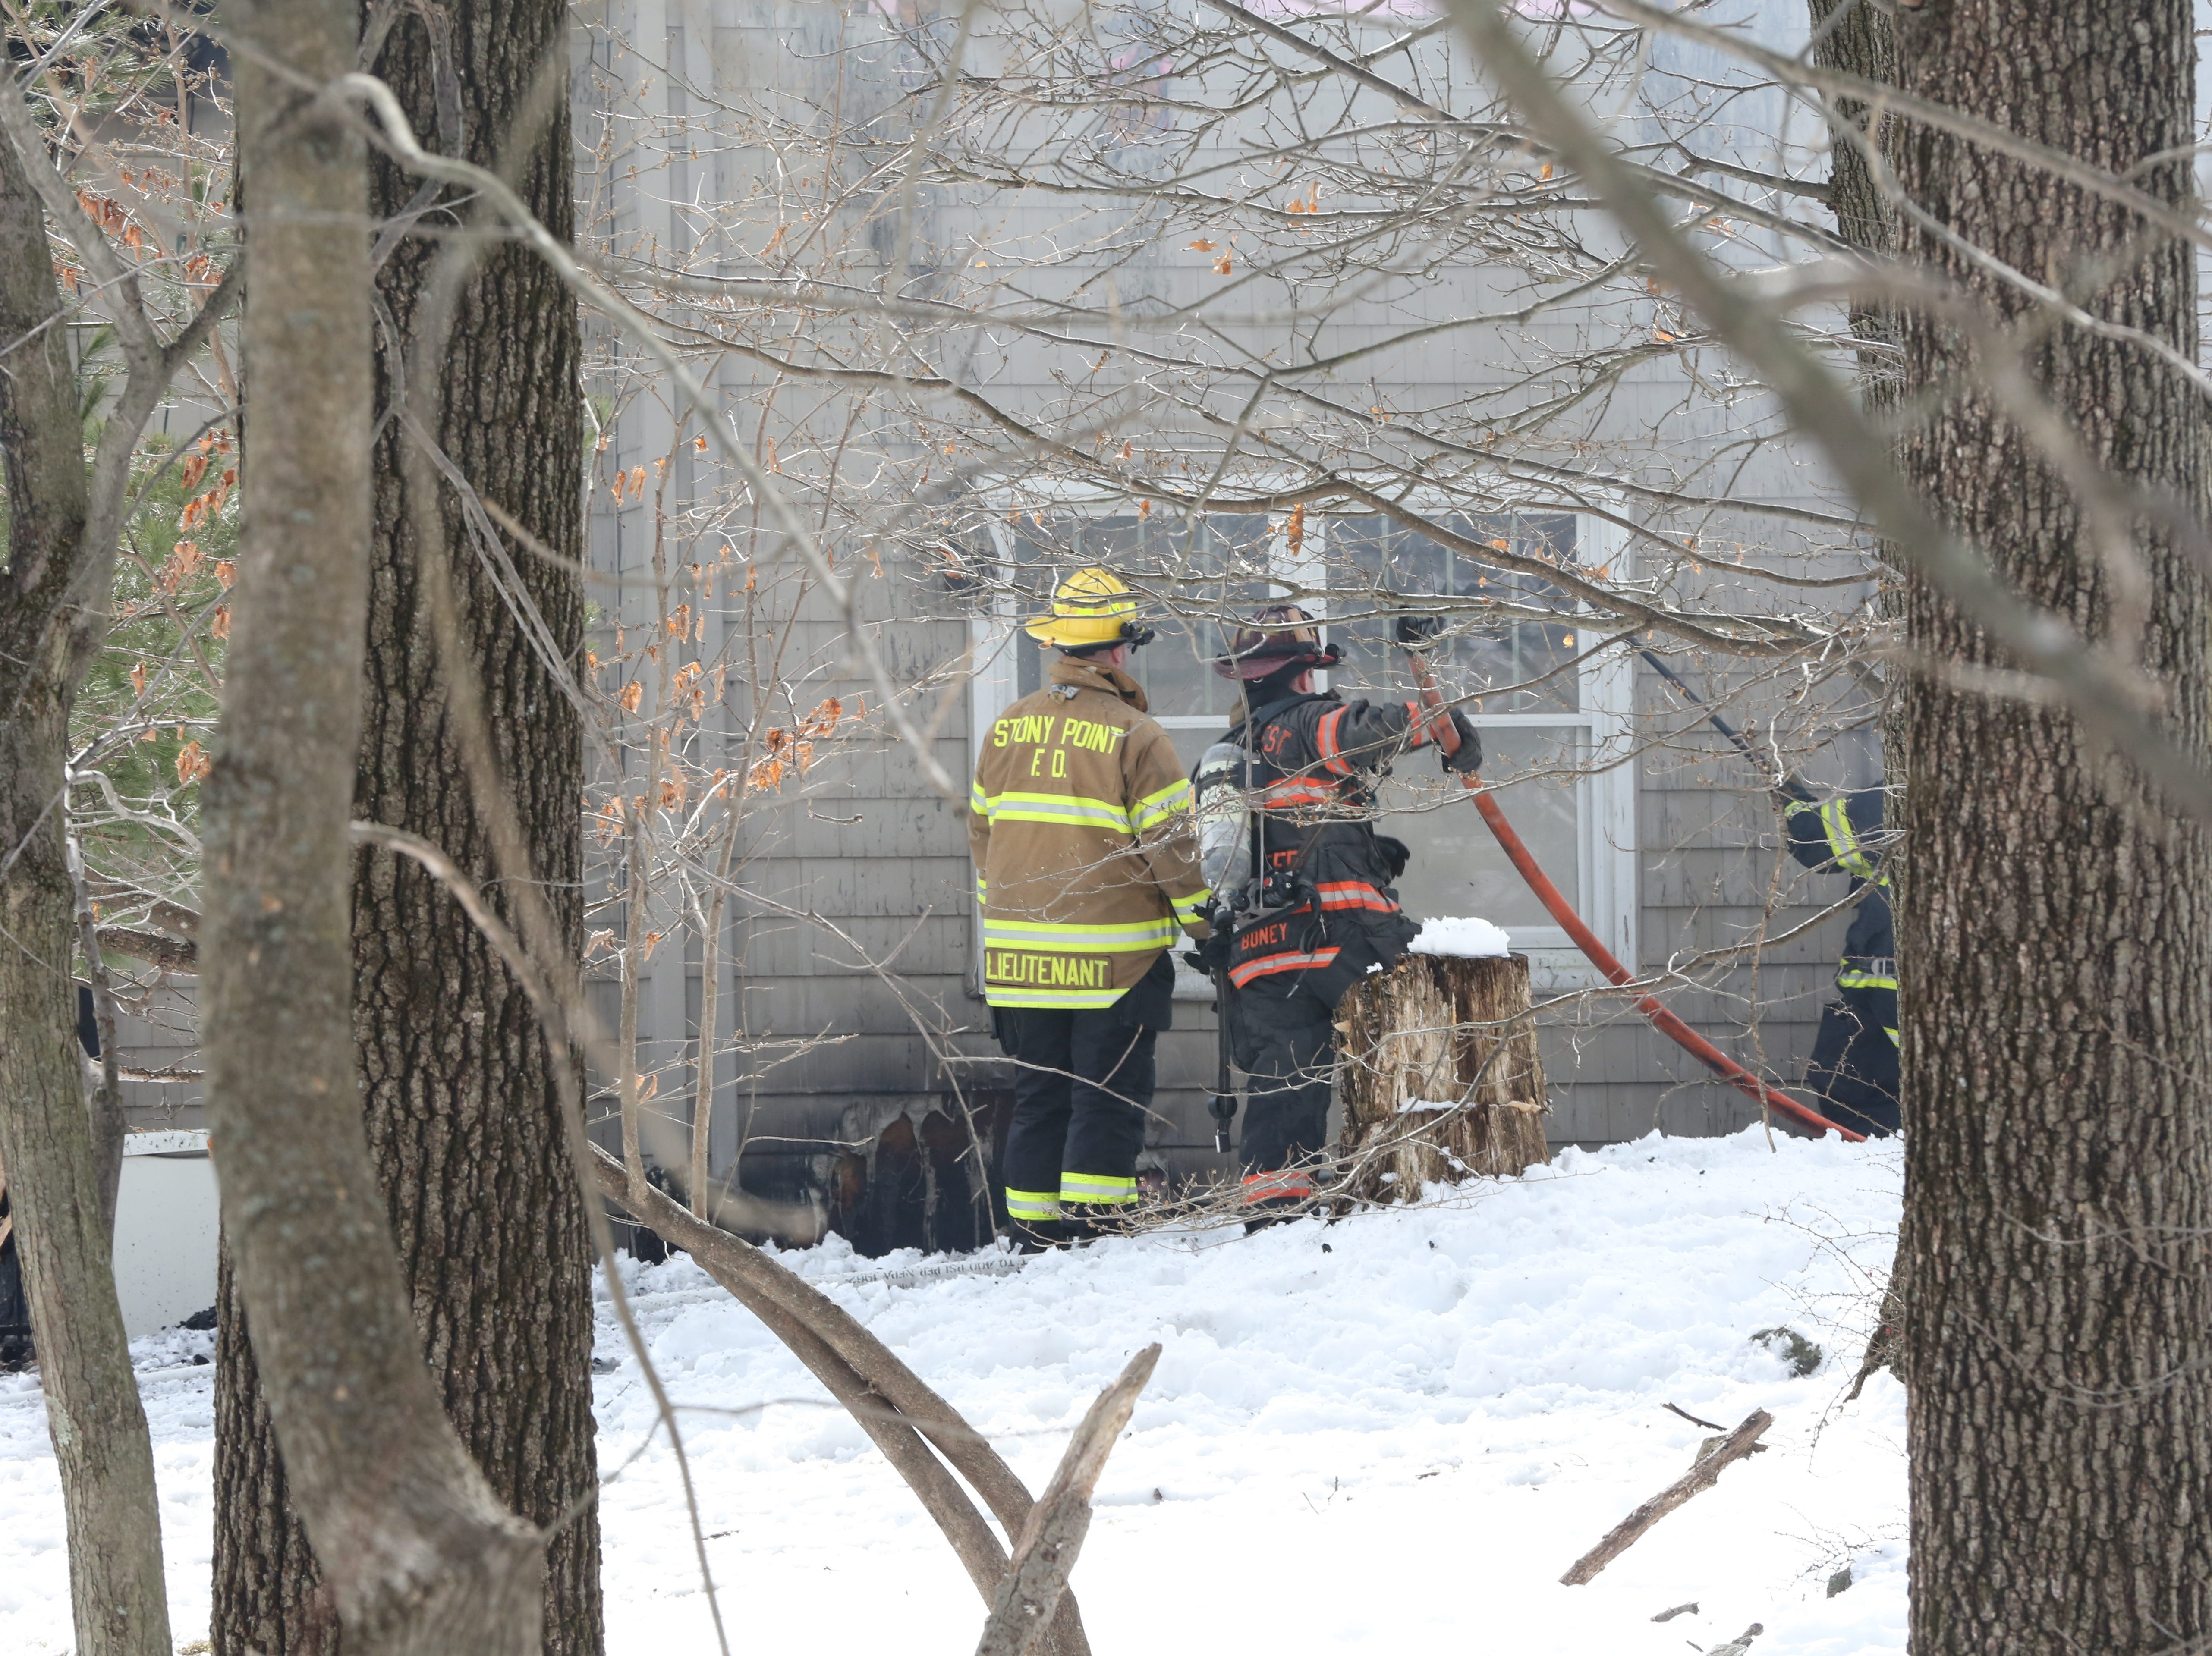 Local Fire companies battle a fire at a home in Tomkins Cove March 8, 2019.